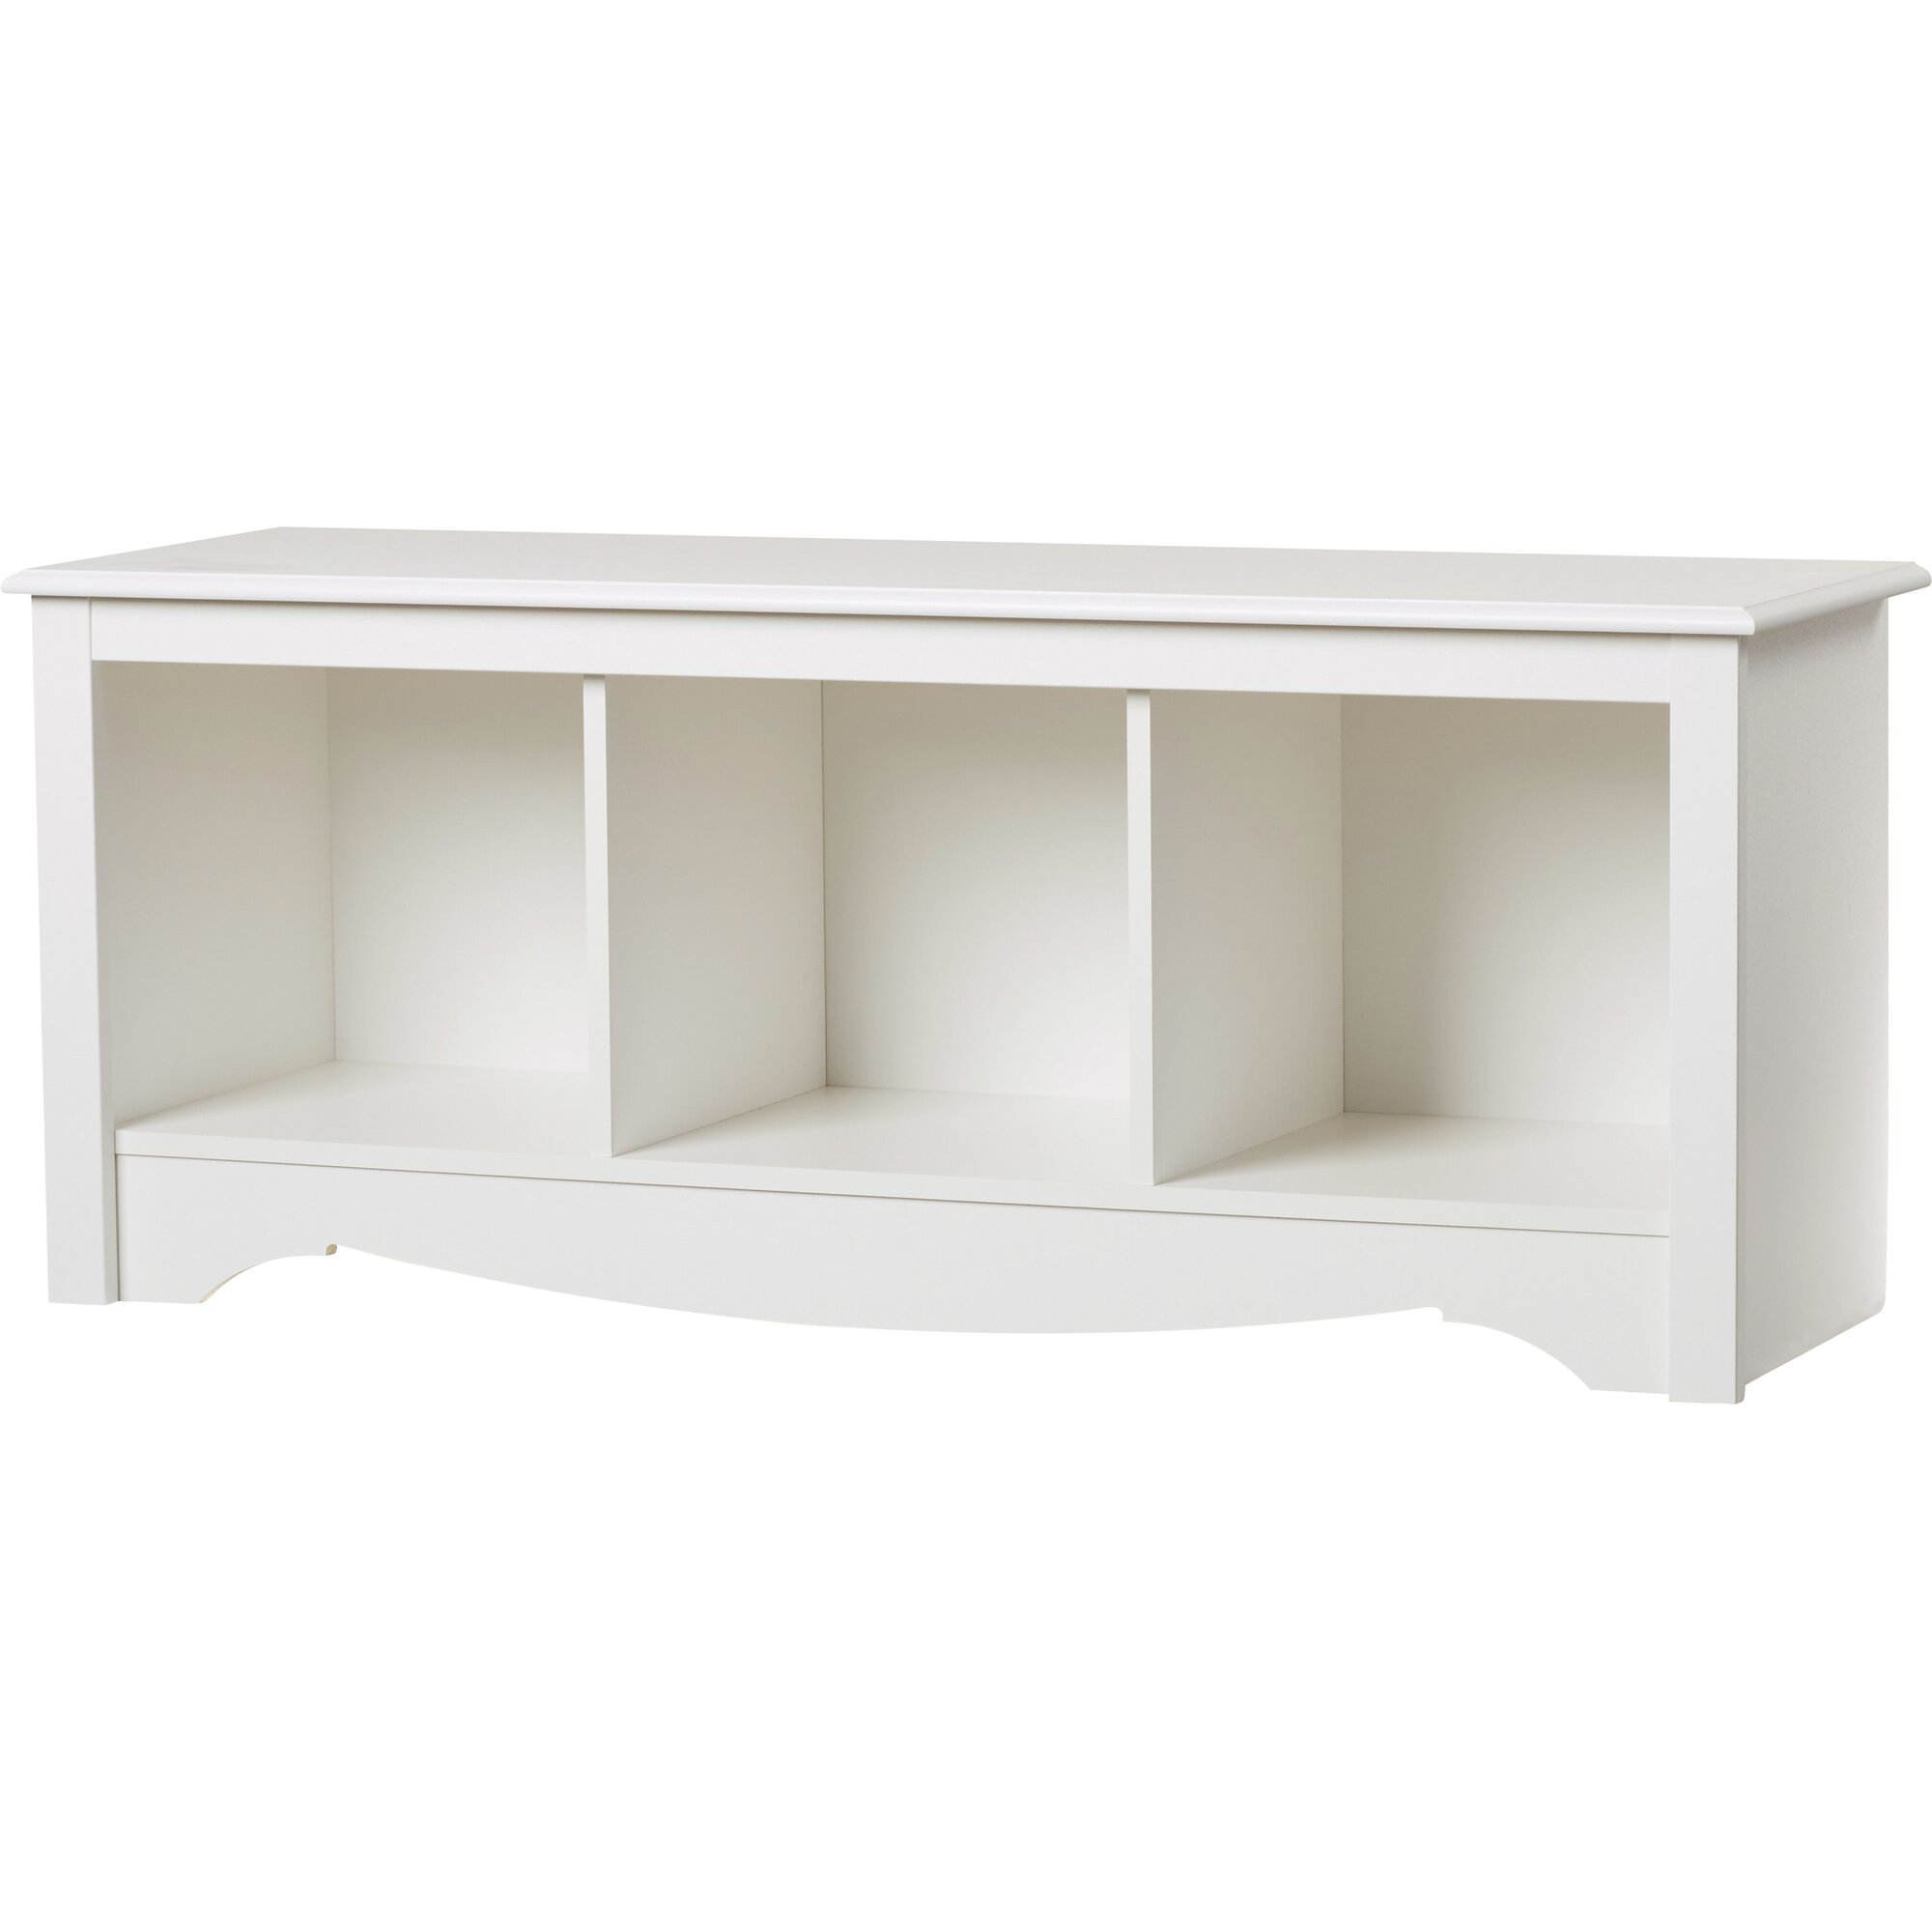 Bedroom bench dimensions - Sybil Storage Bedroom Bench